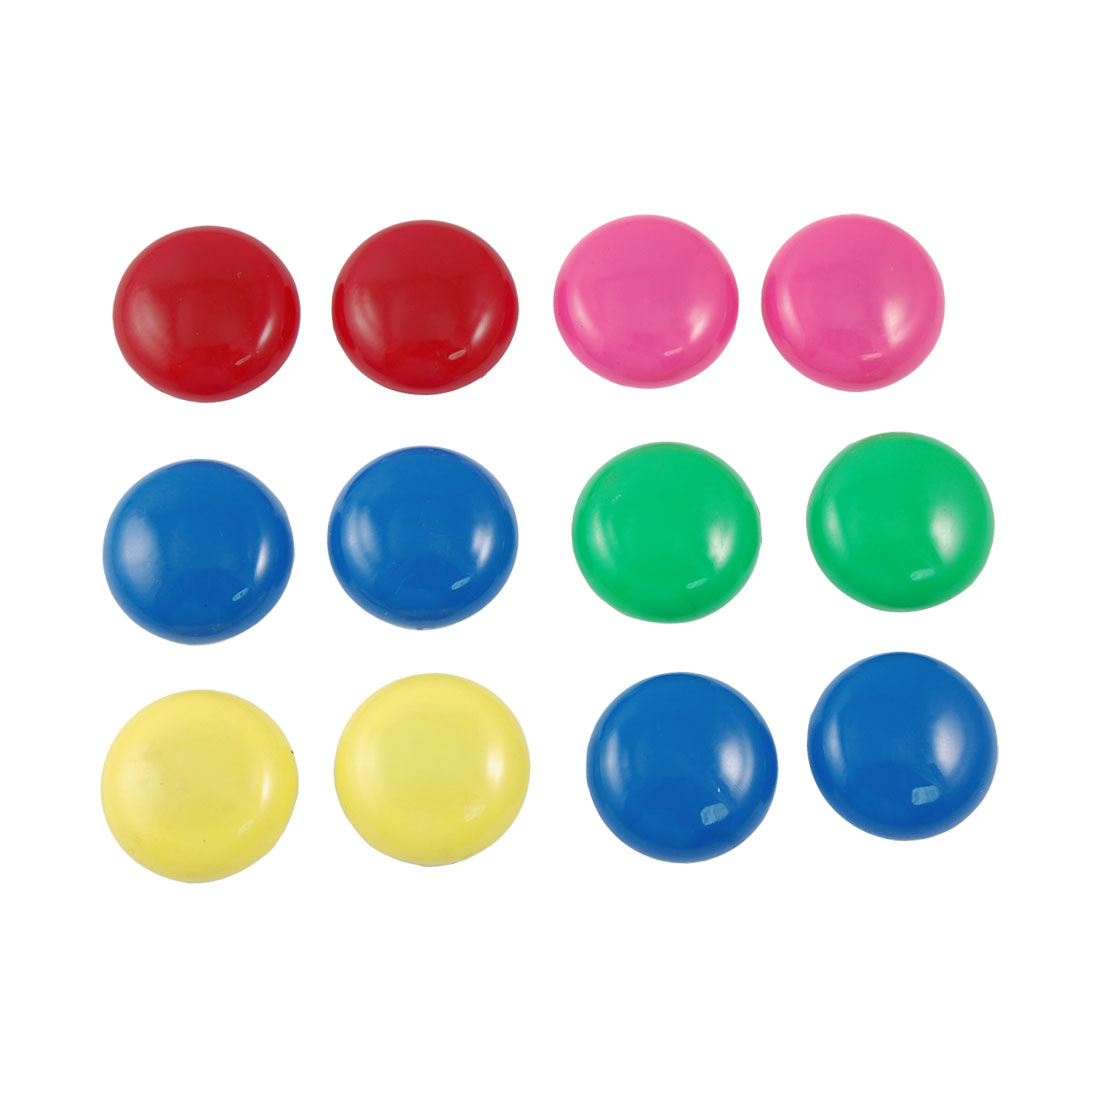 12 x Whiteboard Assorted Color Round Plastic Cover Magnetic Stickers